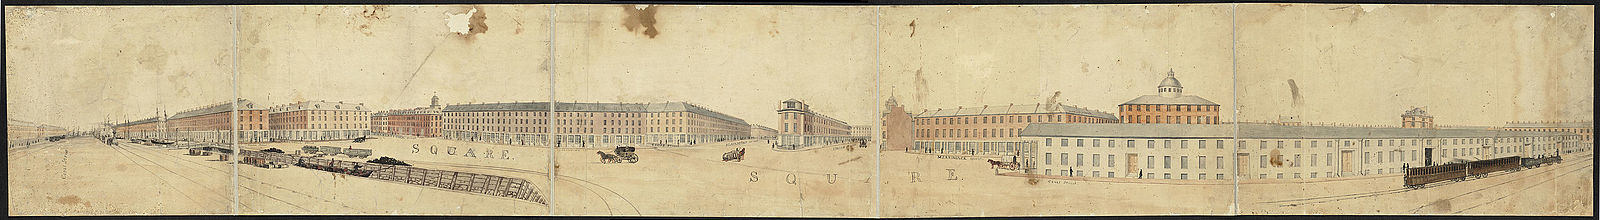 Panoramic view of Haymarket Square in 1835.